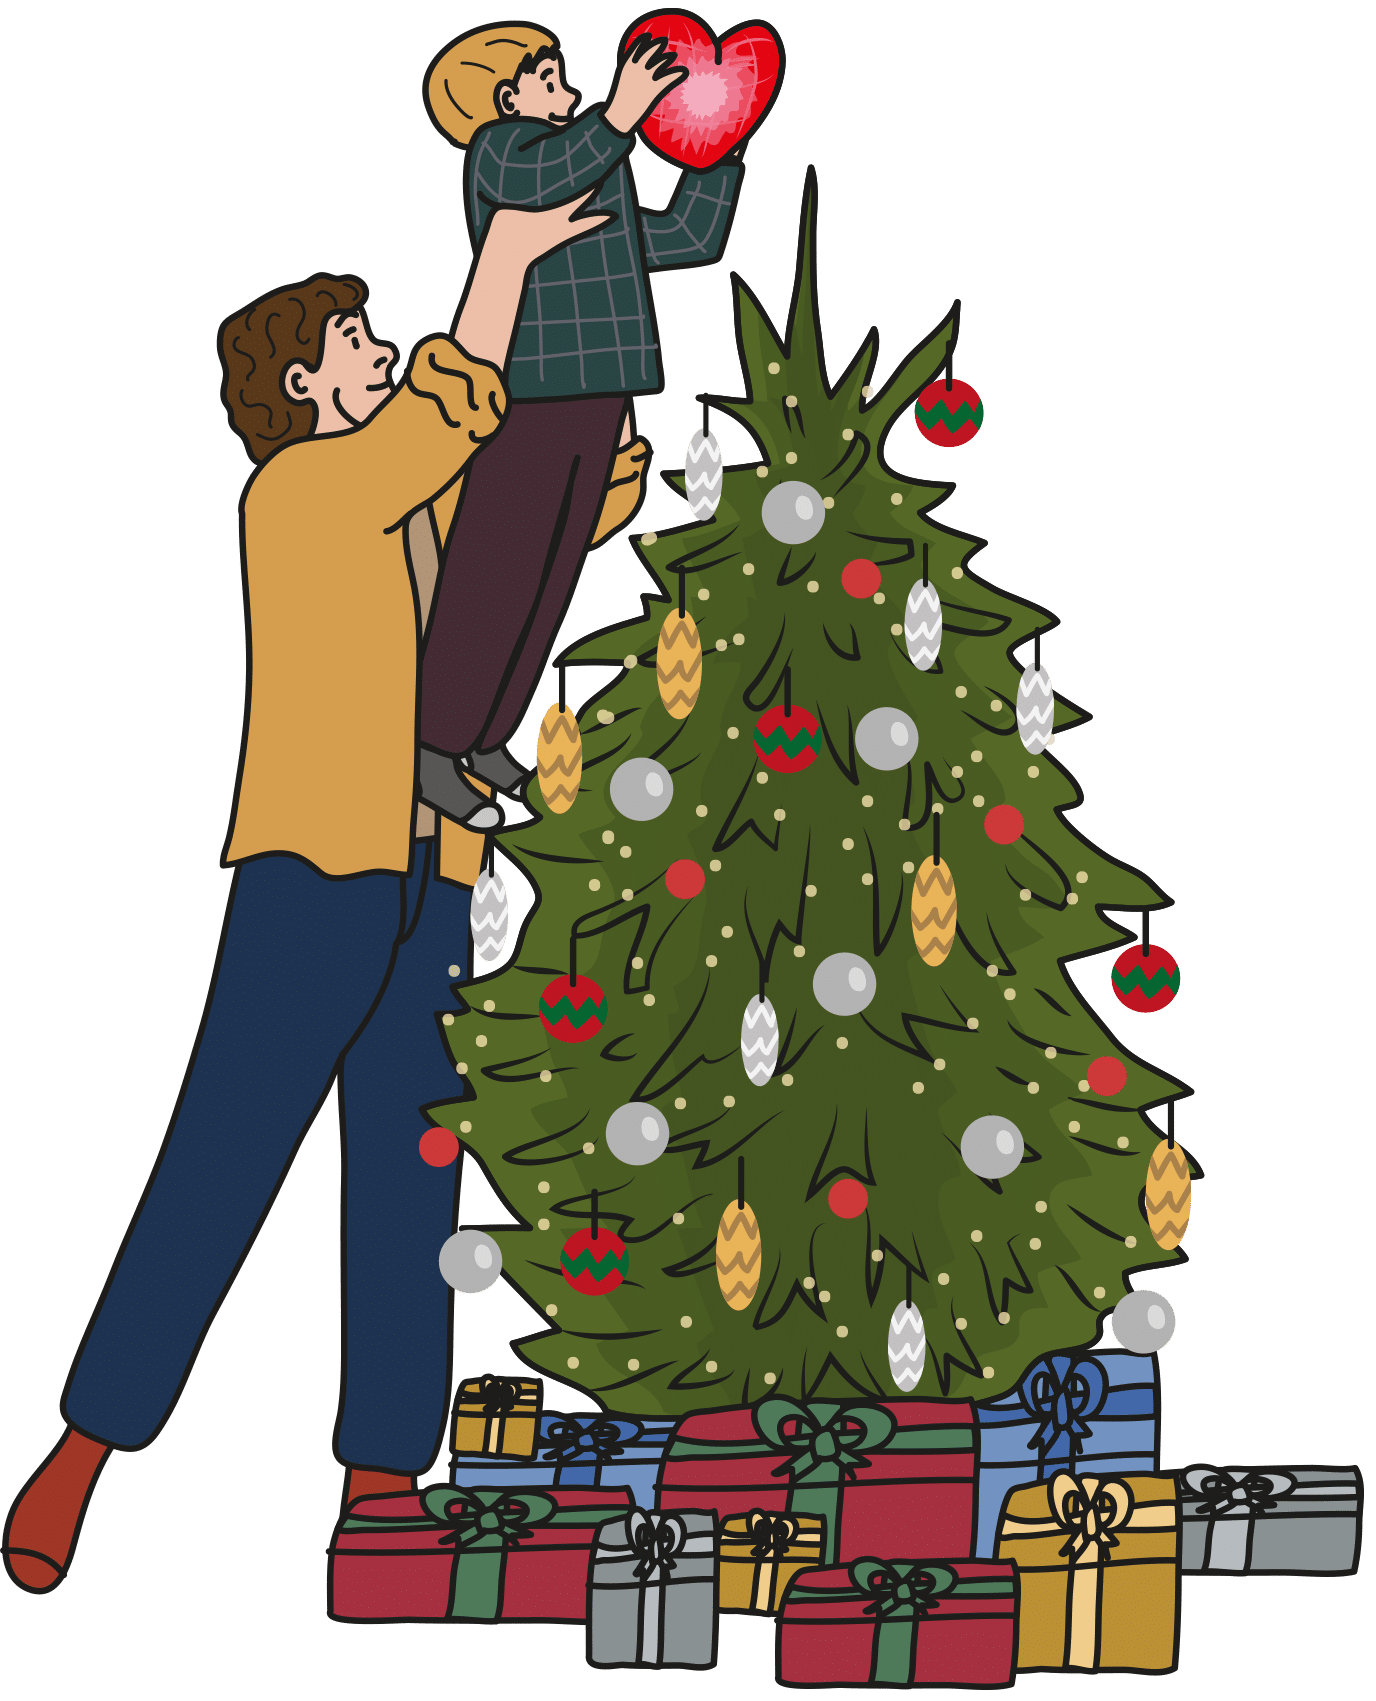 //tpet.co.uk/wp-content/uploads/2020/11/christmas-tree-family-page.png